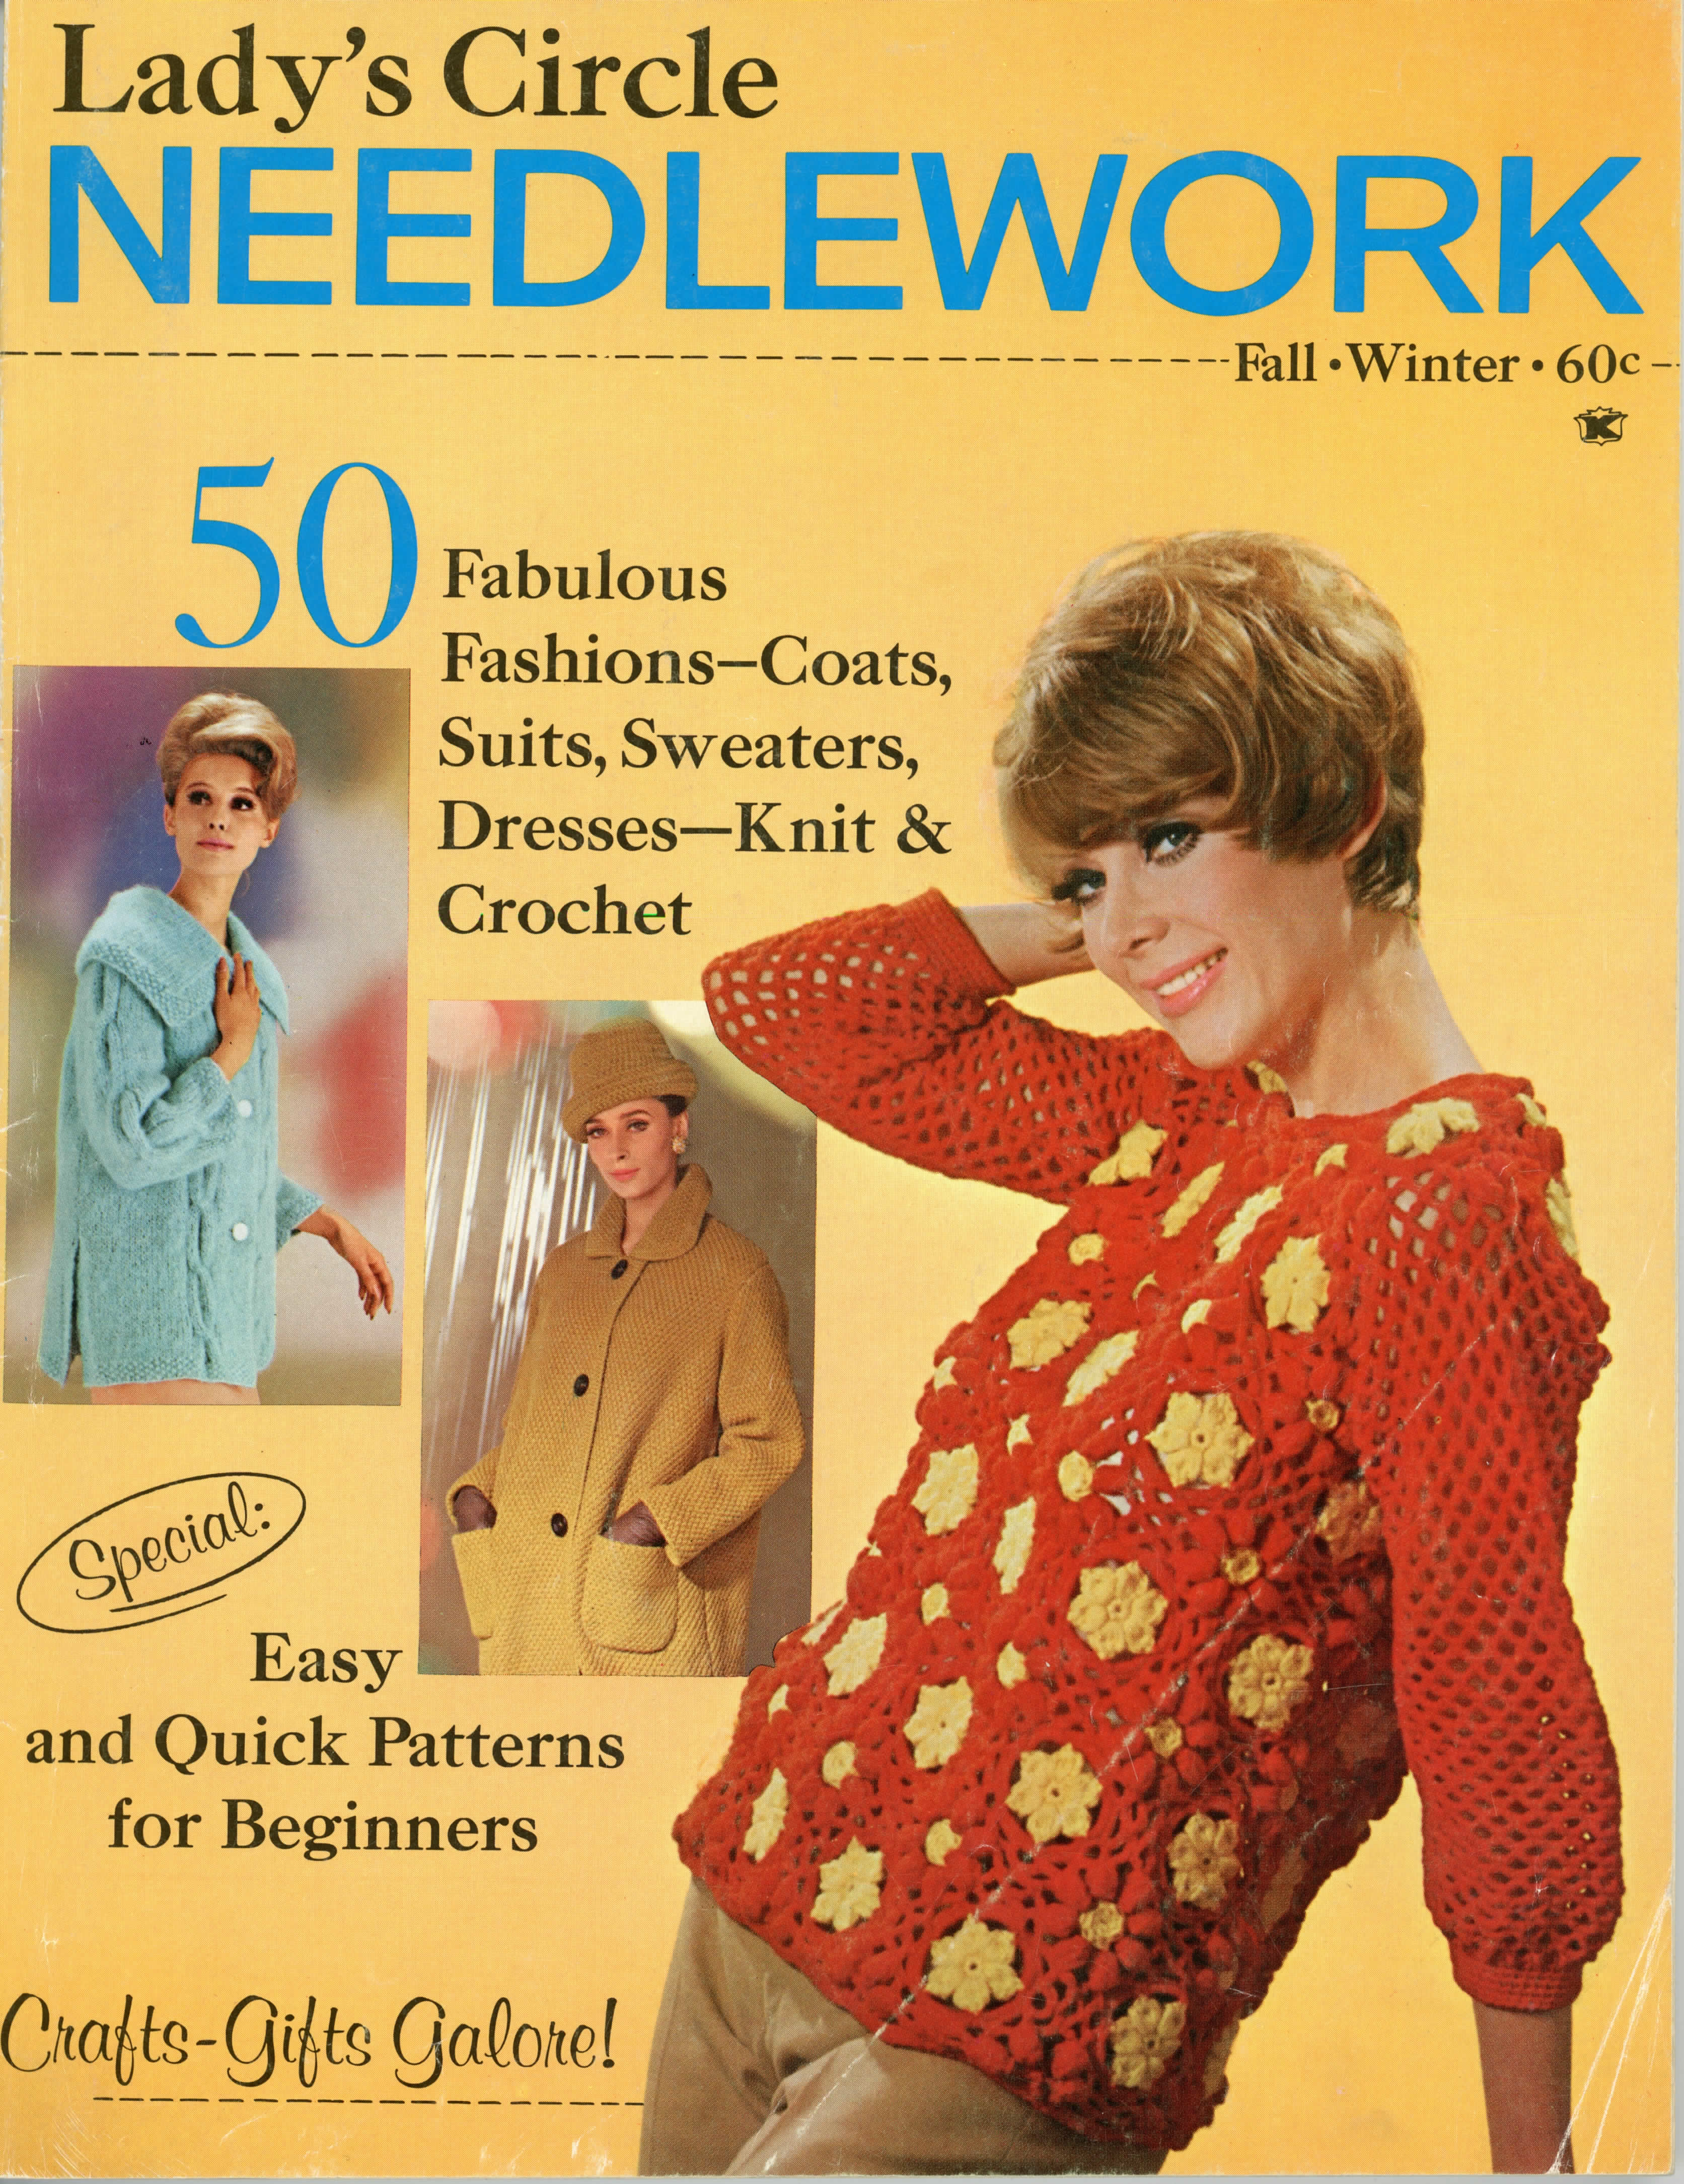 Lady's Circle Needlework